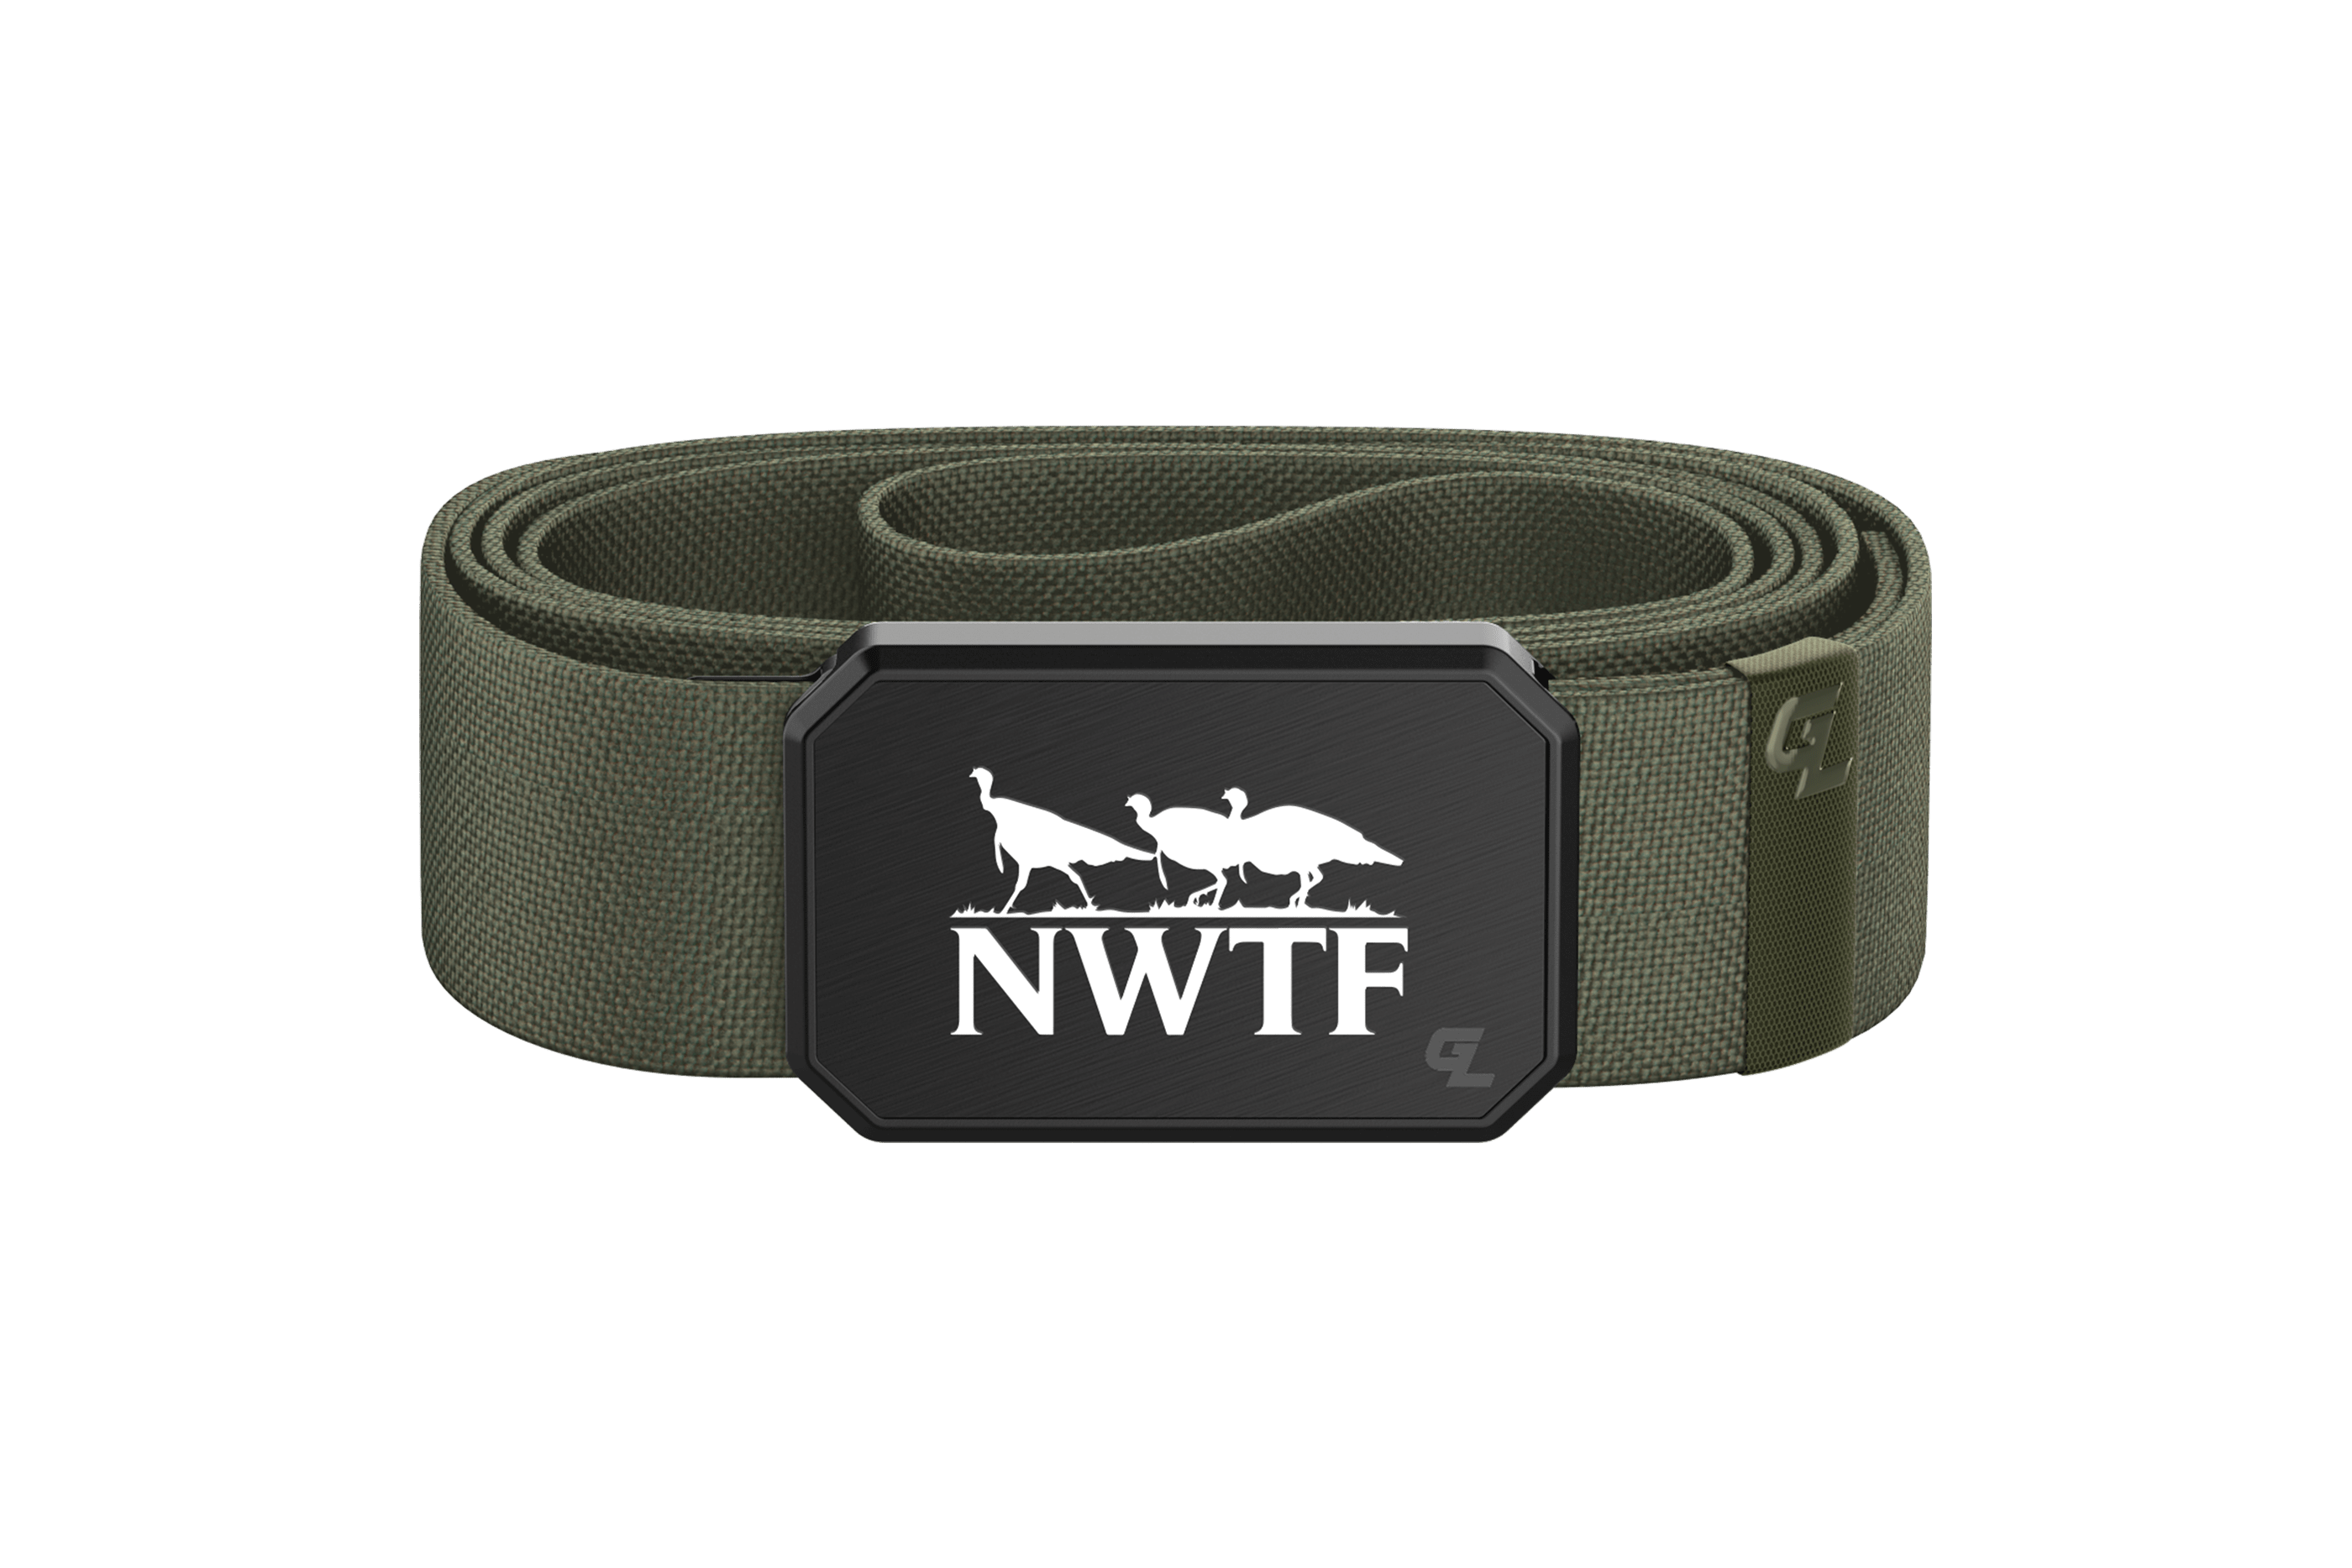 Groove Belt Black/Olive NWTF  viewed front on